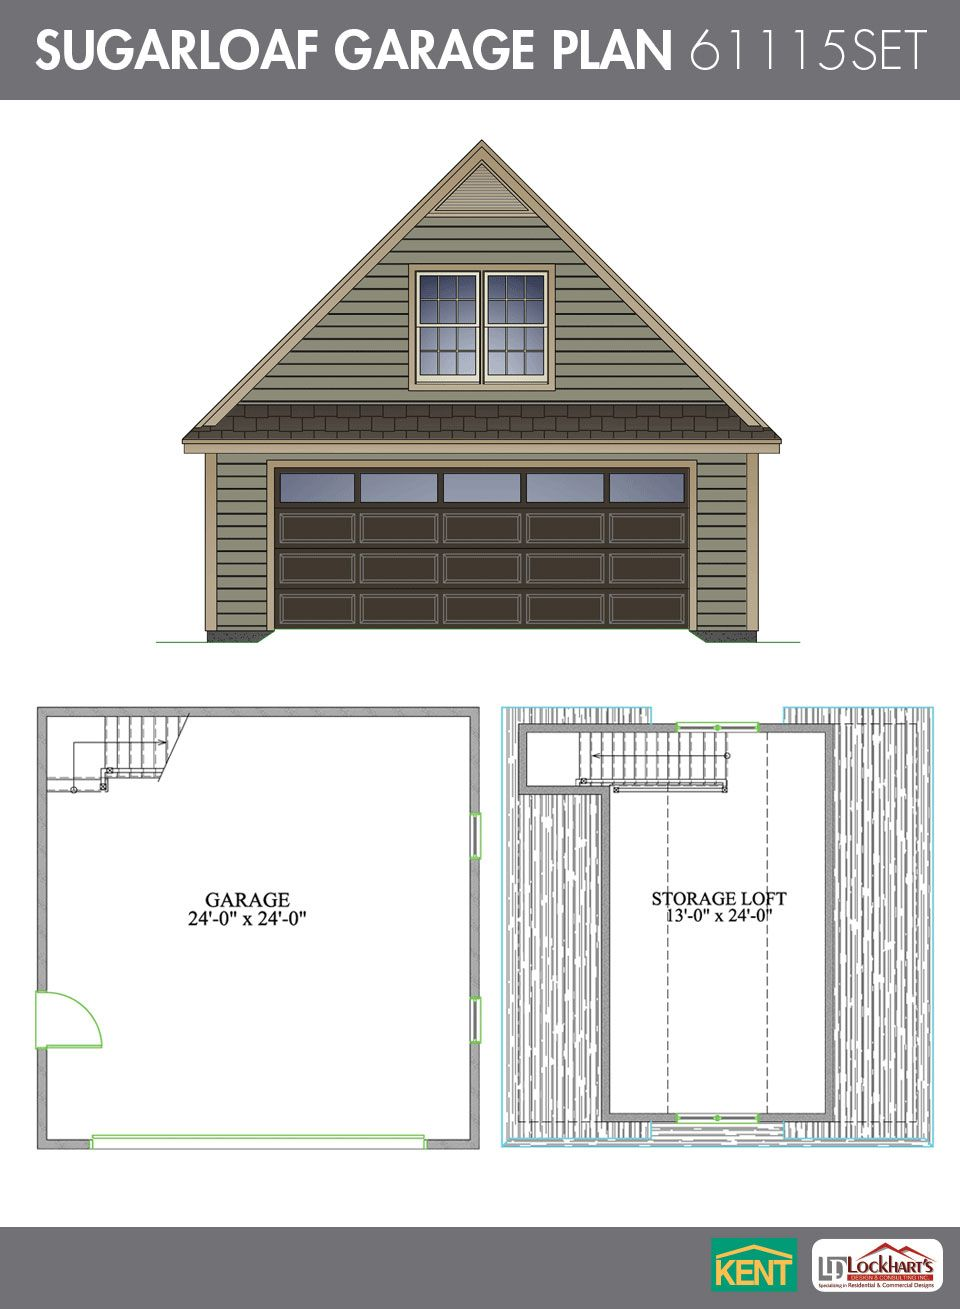 Sugarloaf garage plan 26 39 x 28 39 2 car garage 378 sq ft for Garage blueprints